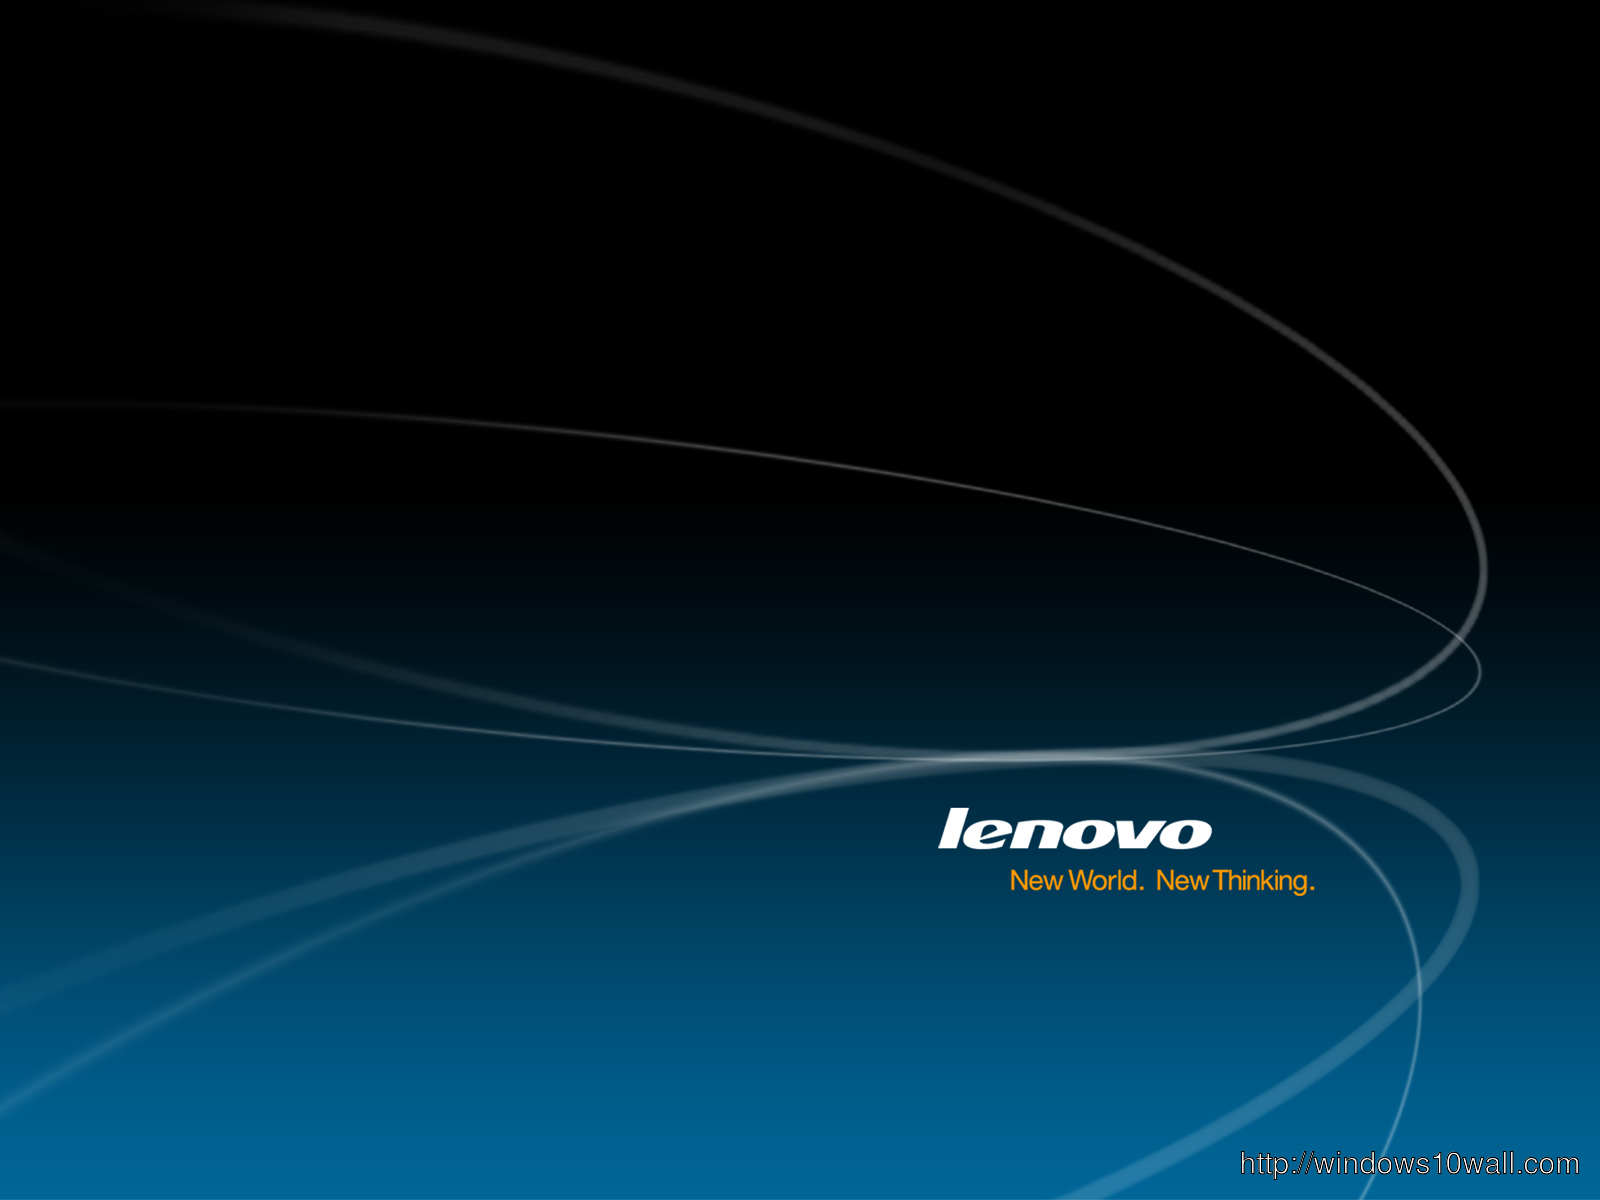 background wallpapers new: Lenovo Background Wallpapers